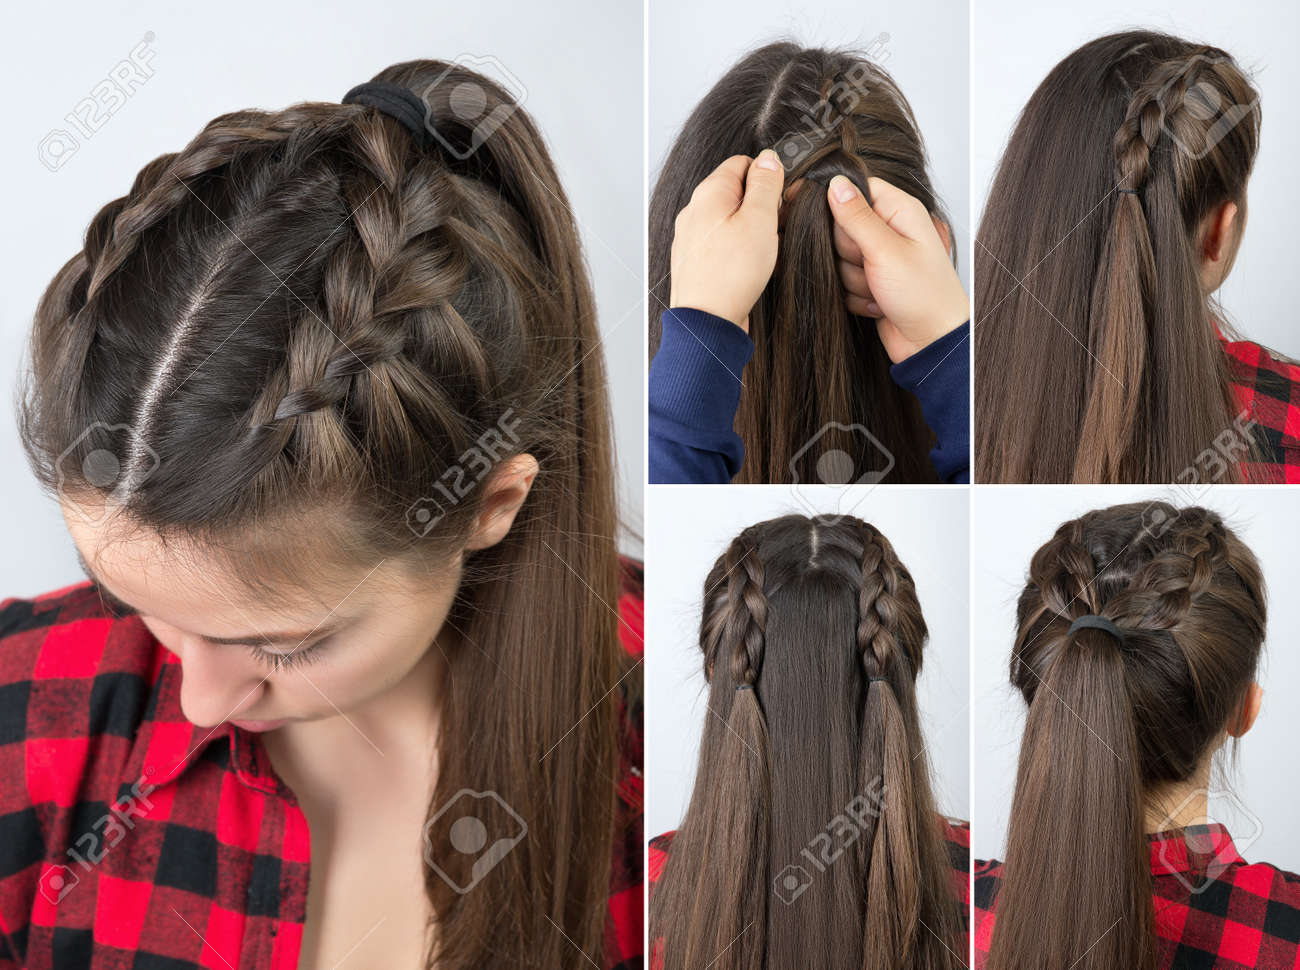 pony tail with braid hairstyle tutorial - 74496049